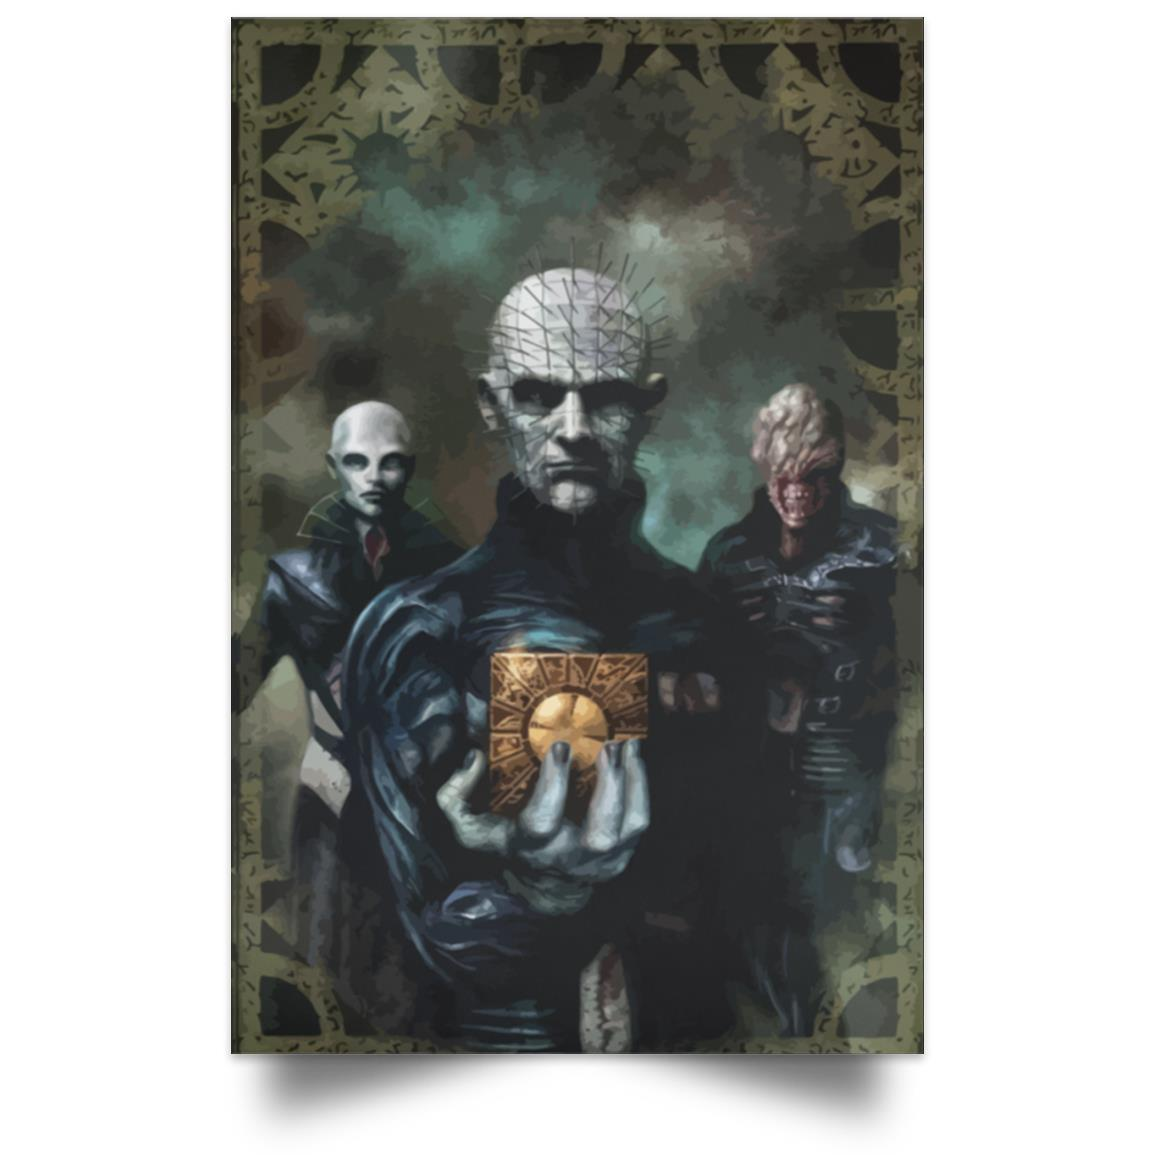 HELLRAISER WELCOME IN HELL POSTER 1